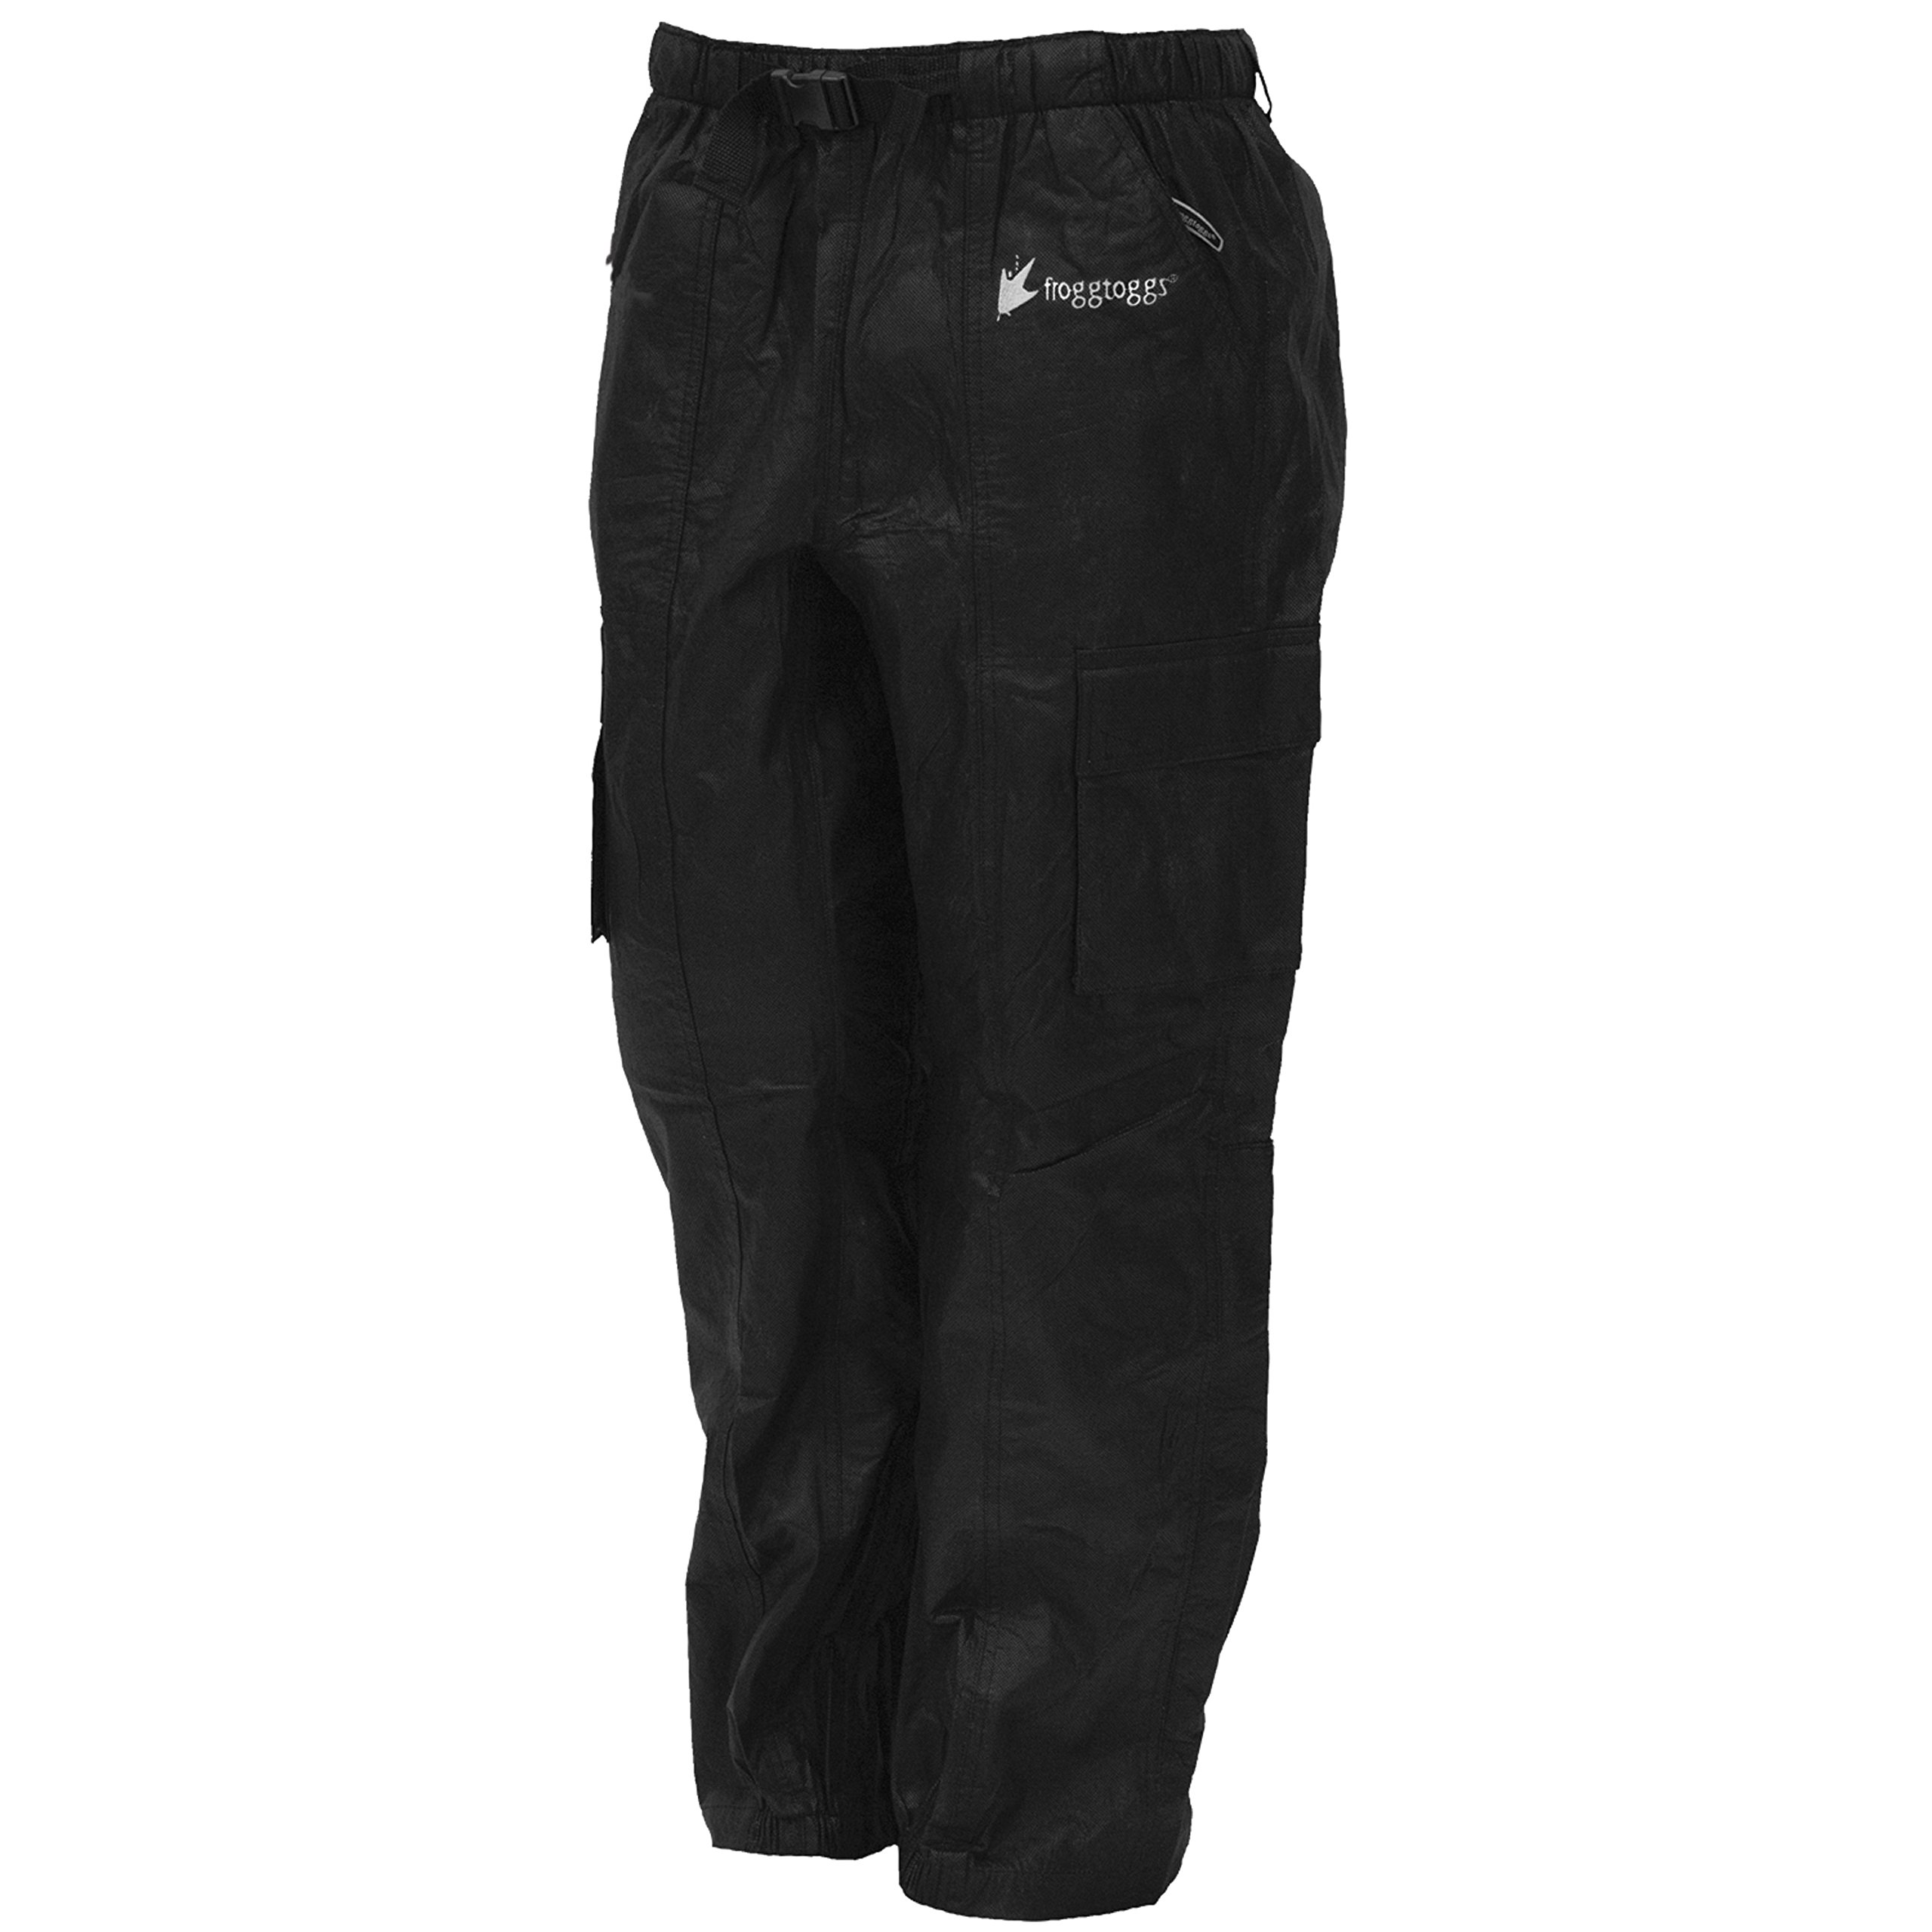 Frogg Toggs Men's Tekk Toad Pant, Black, Large